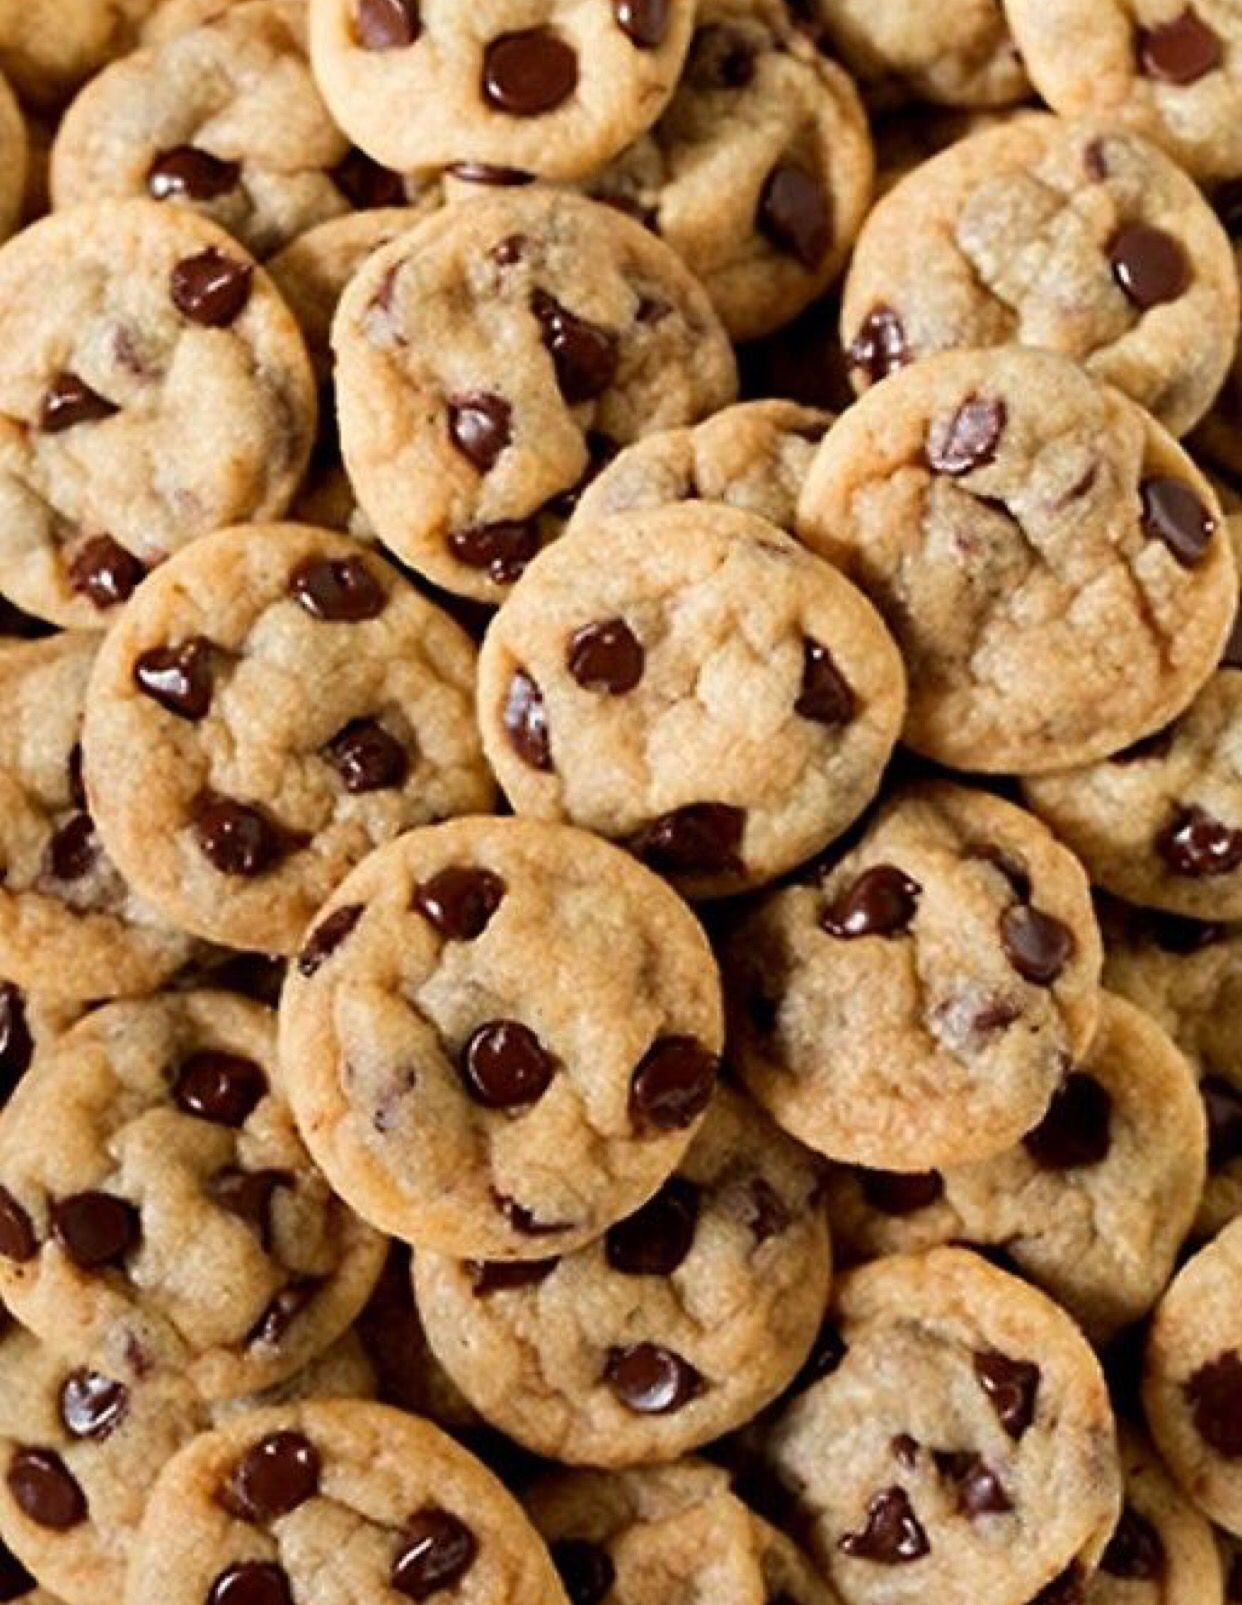 Pin By Valeria Malpartida On The Chocolate Chip Yummy Food Dessert Food Food Wallpaper